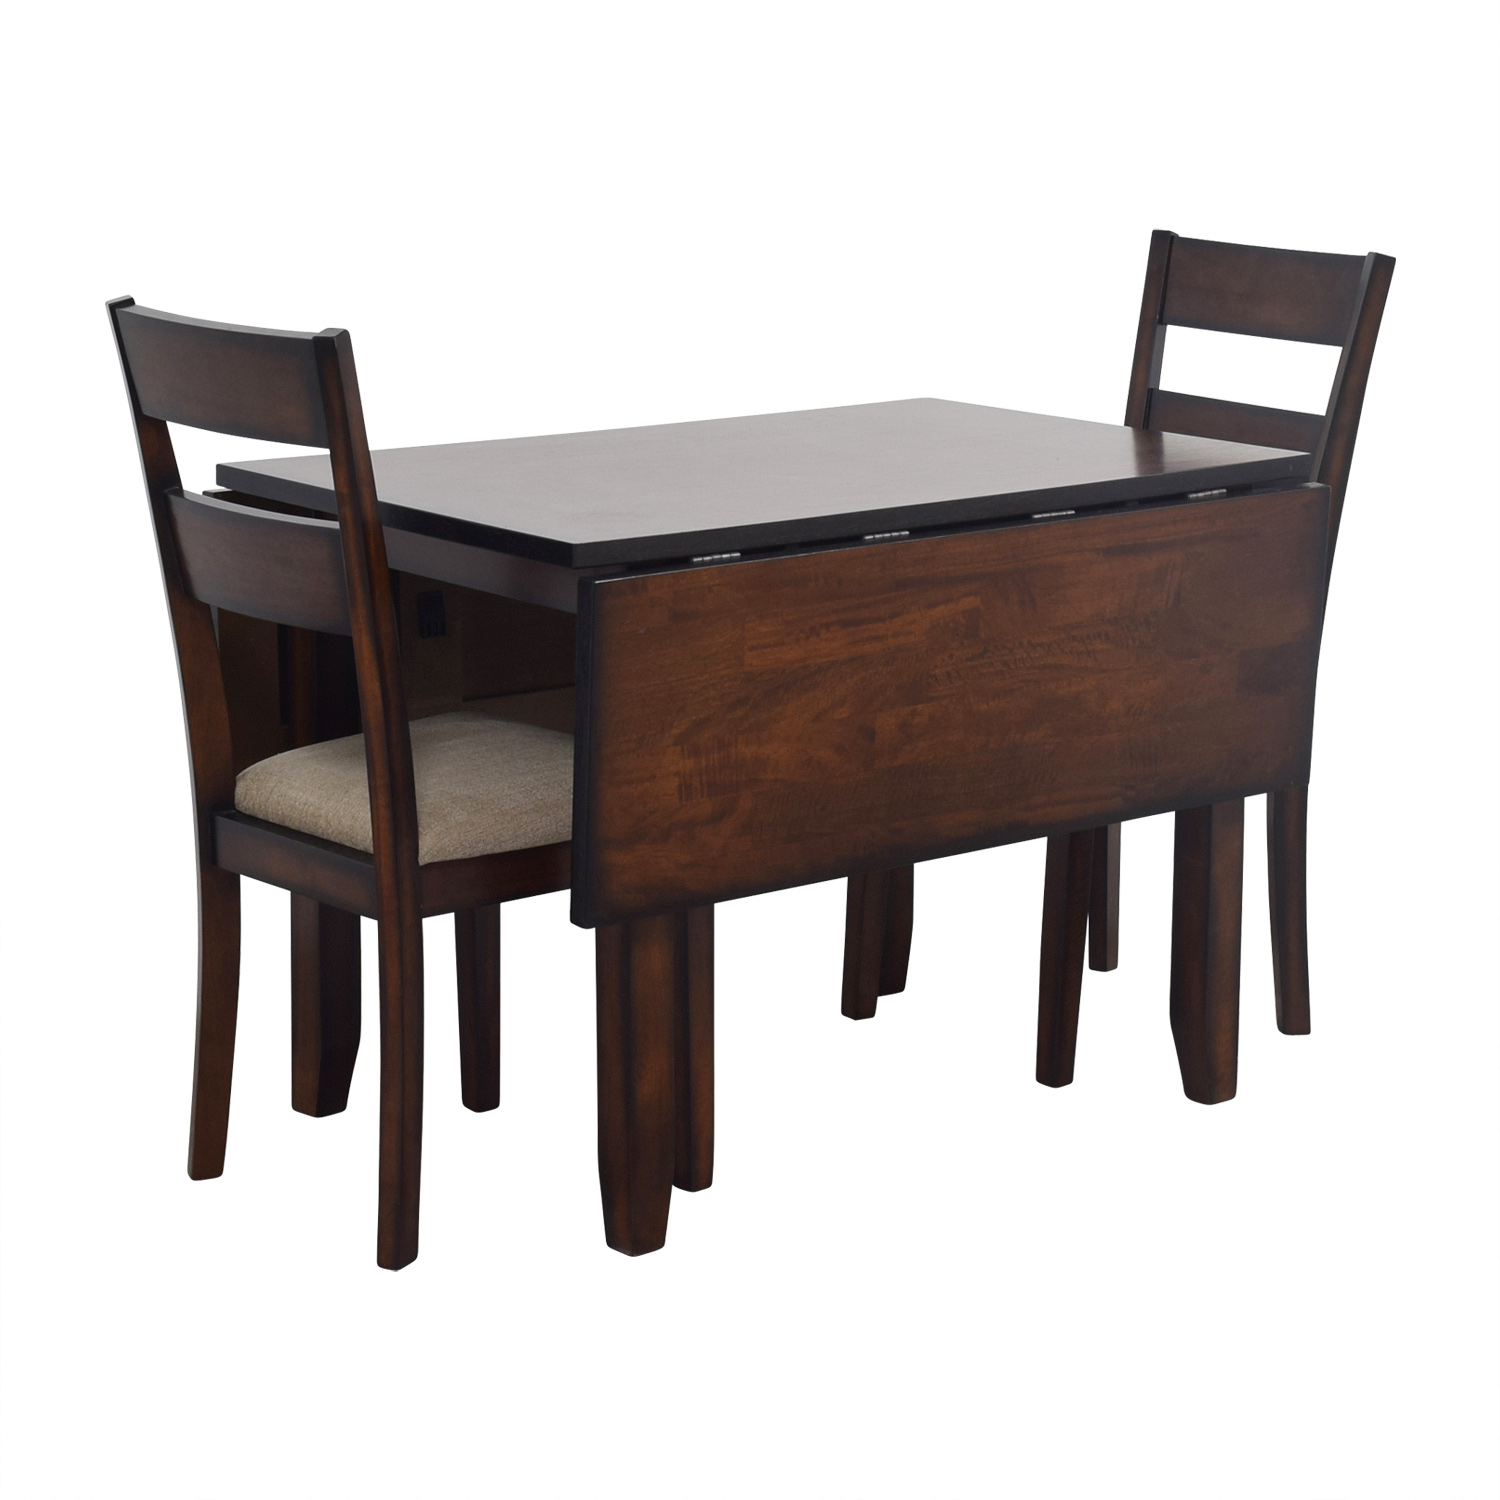 Genial ... IFM IFM Drop Leaf Table With Two Chairs ...